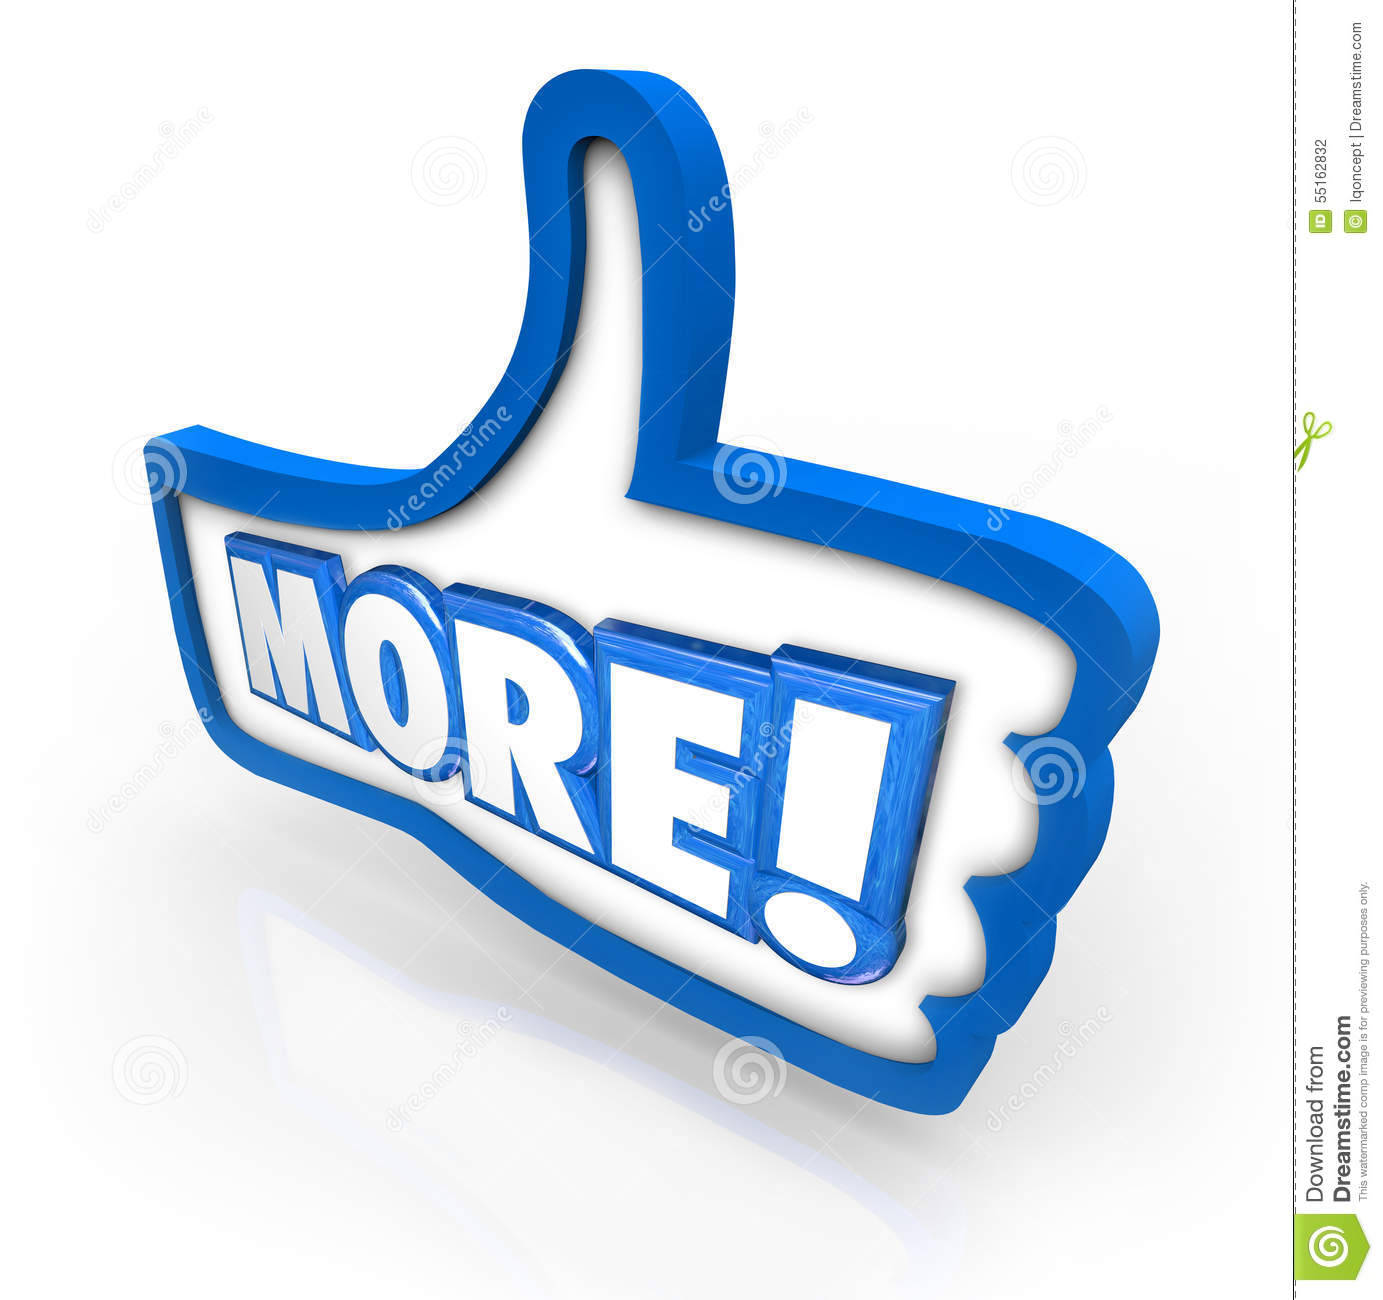 More Thumbs Up Increase Improve Results Approve Added Results Stock